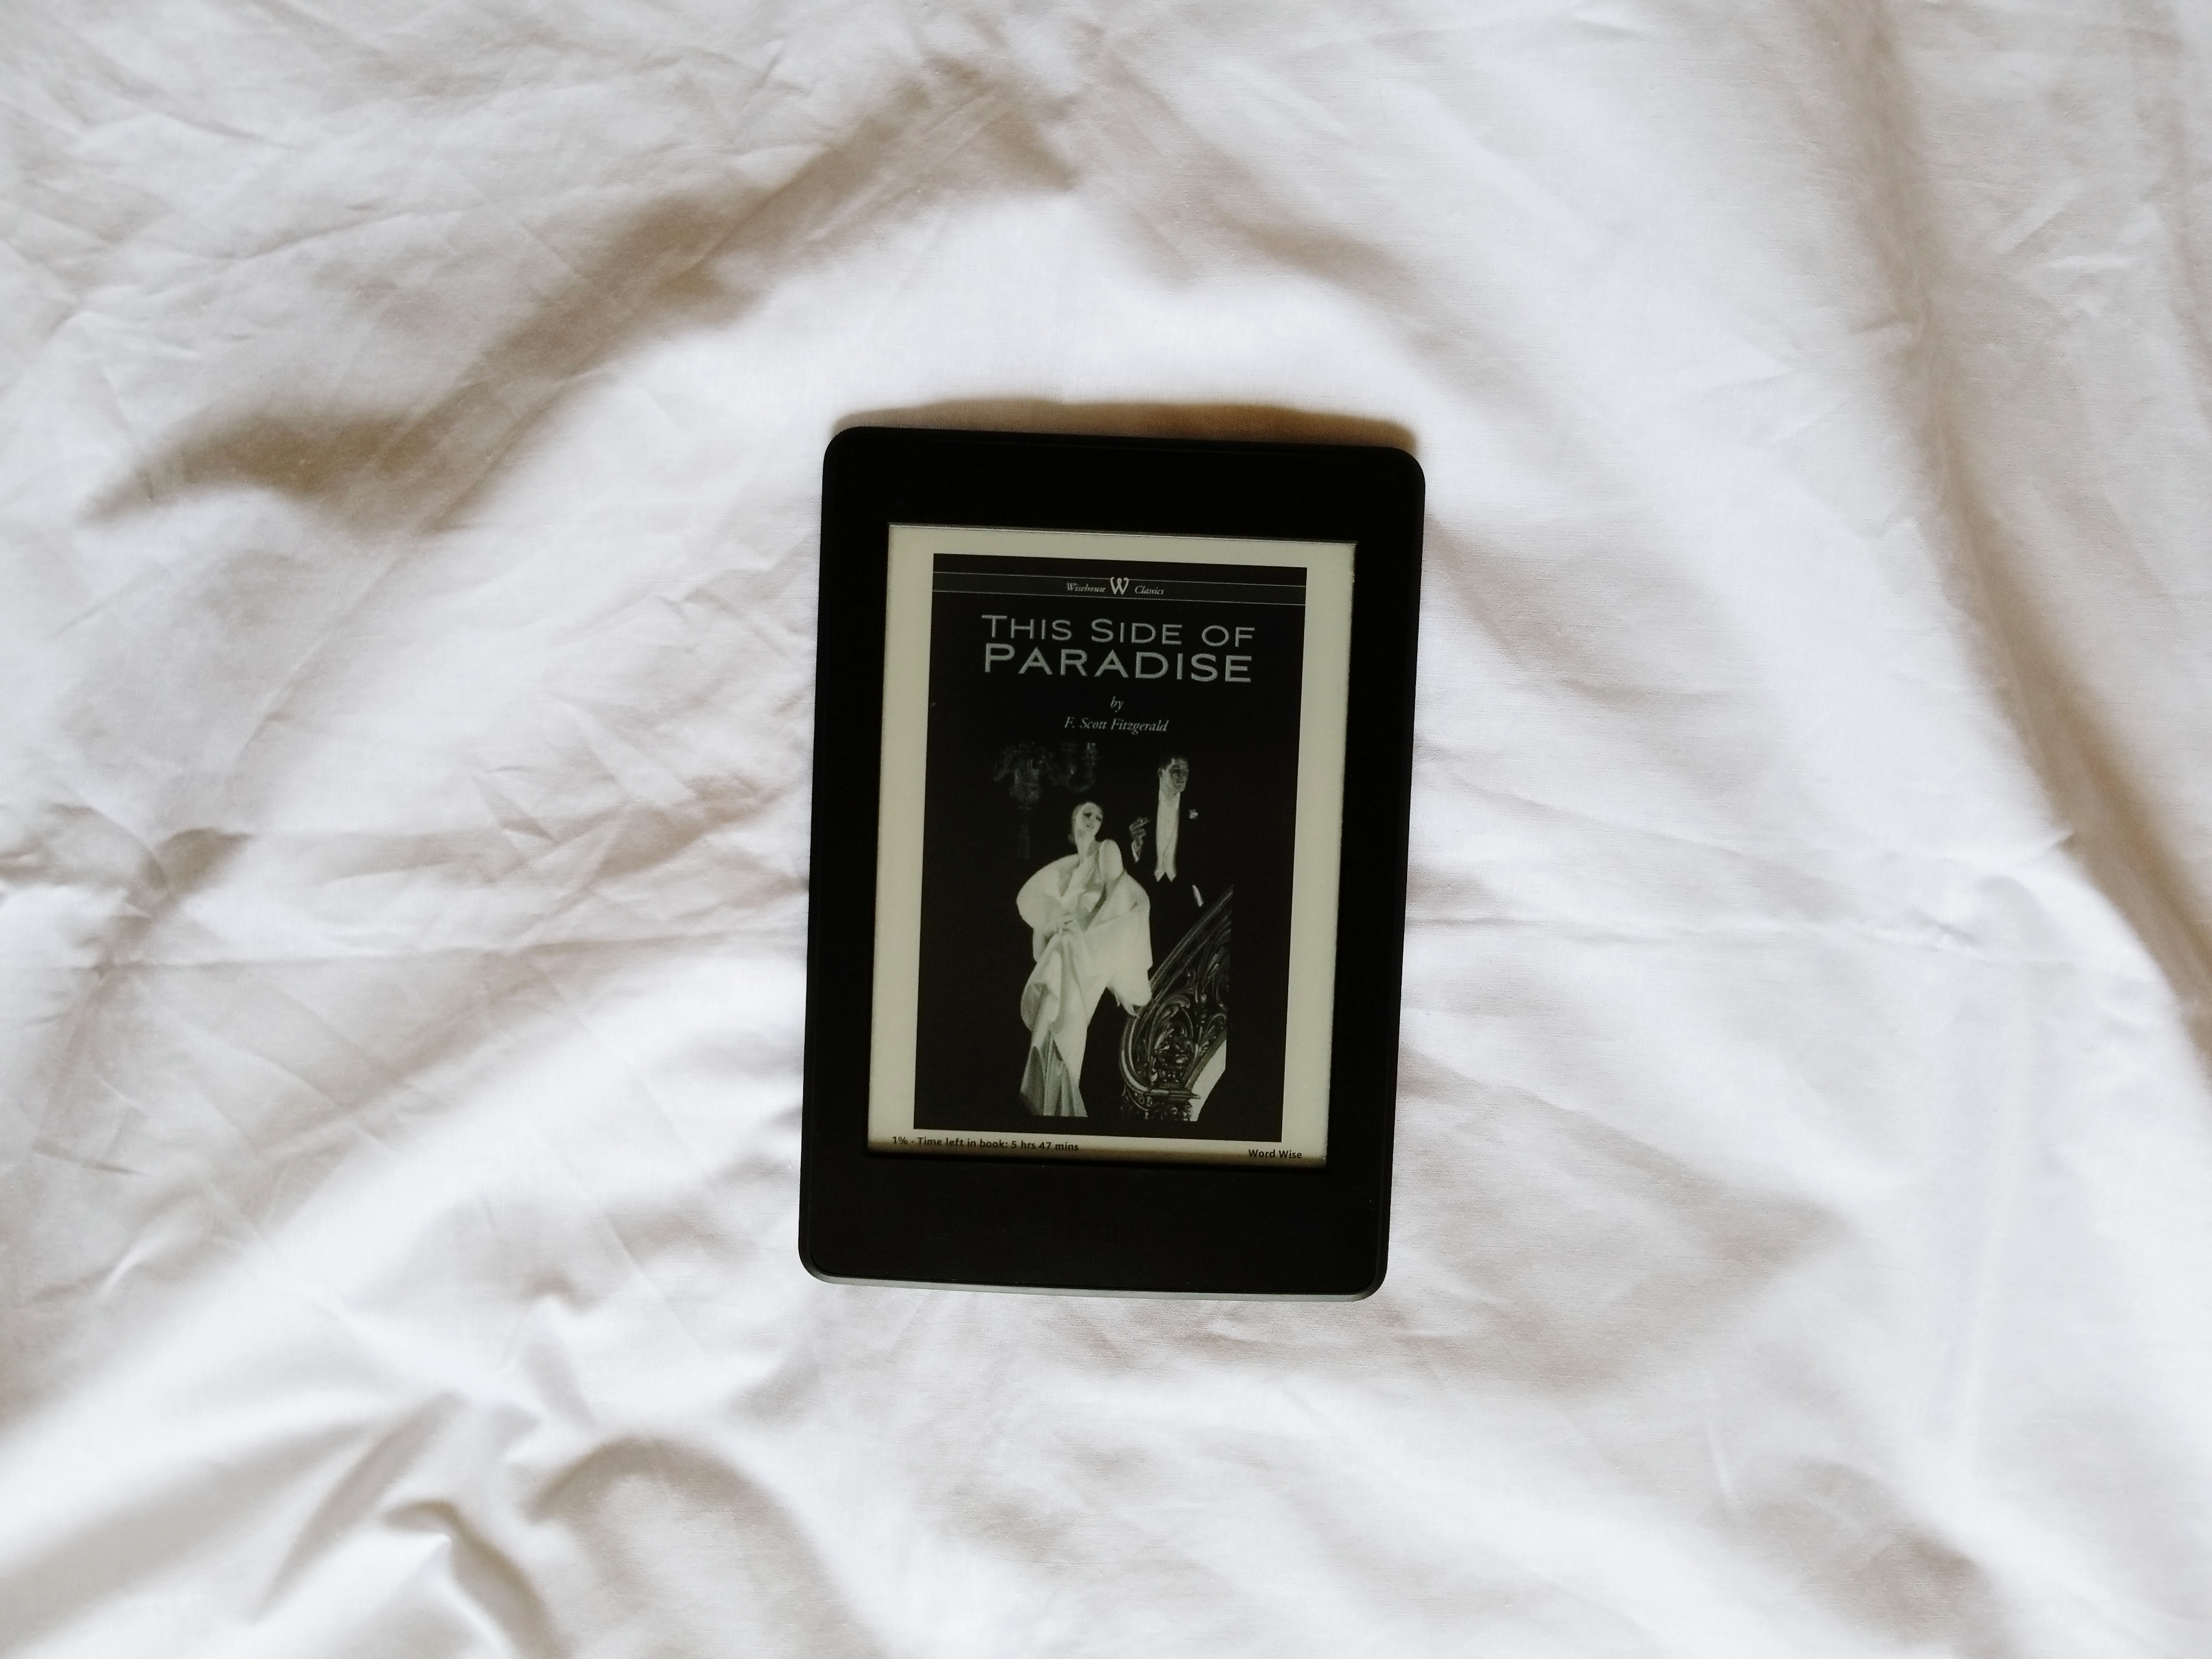 On the Seemingly Vain Things We Do: In F. Scott Fitzgerald's This Side of Paradise